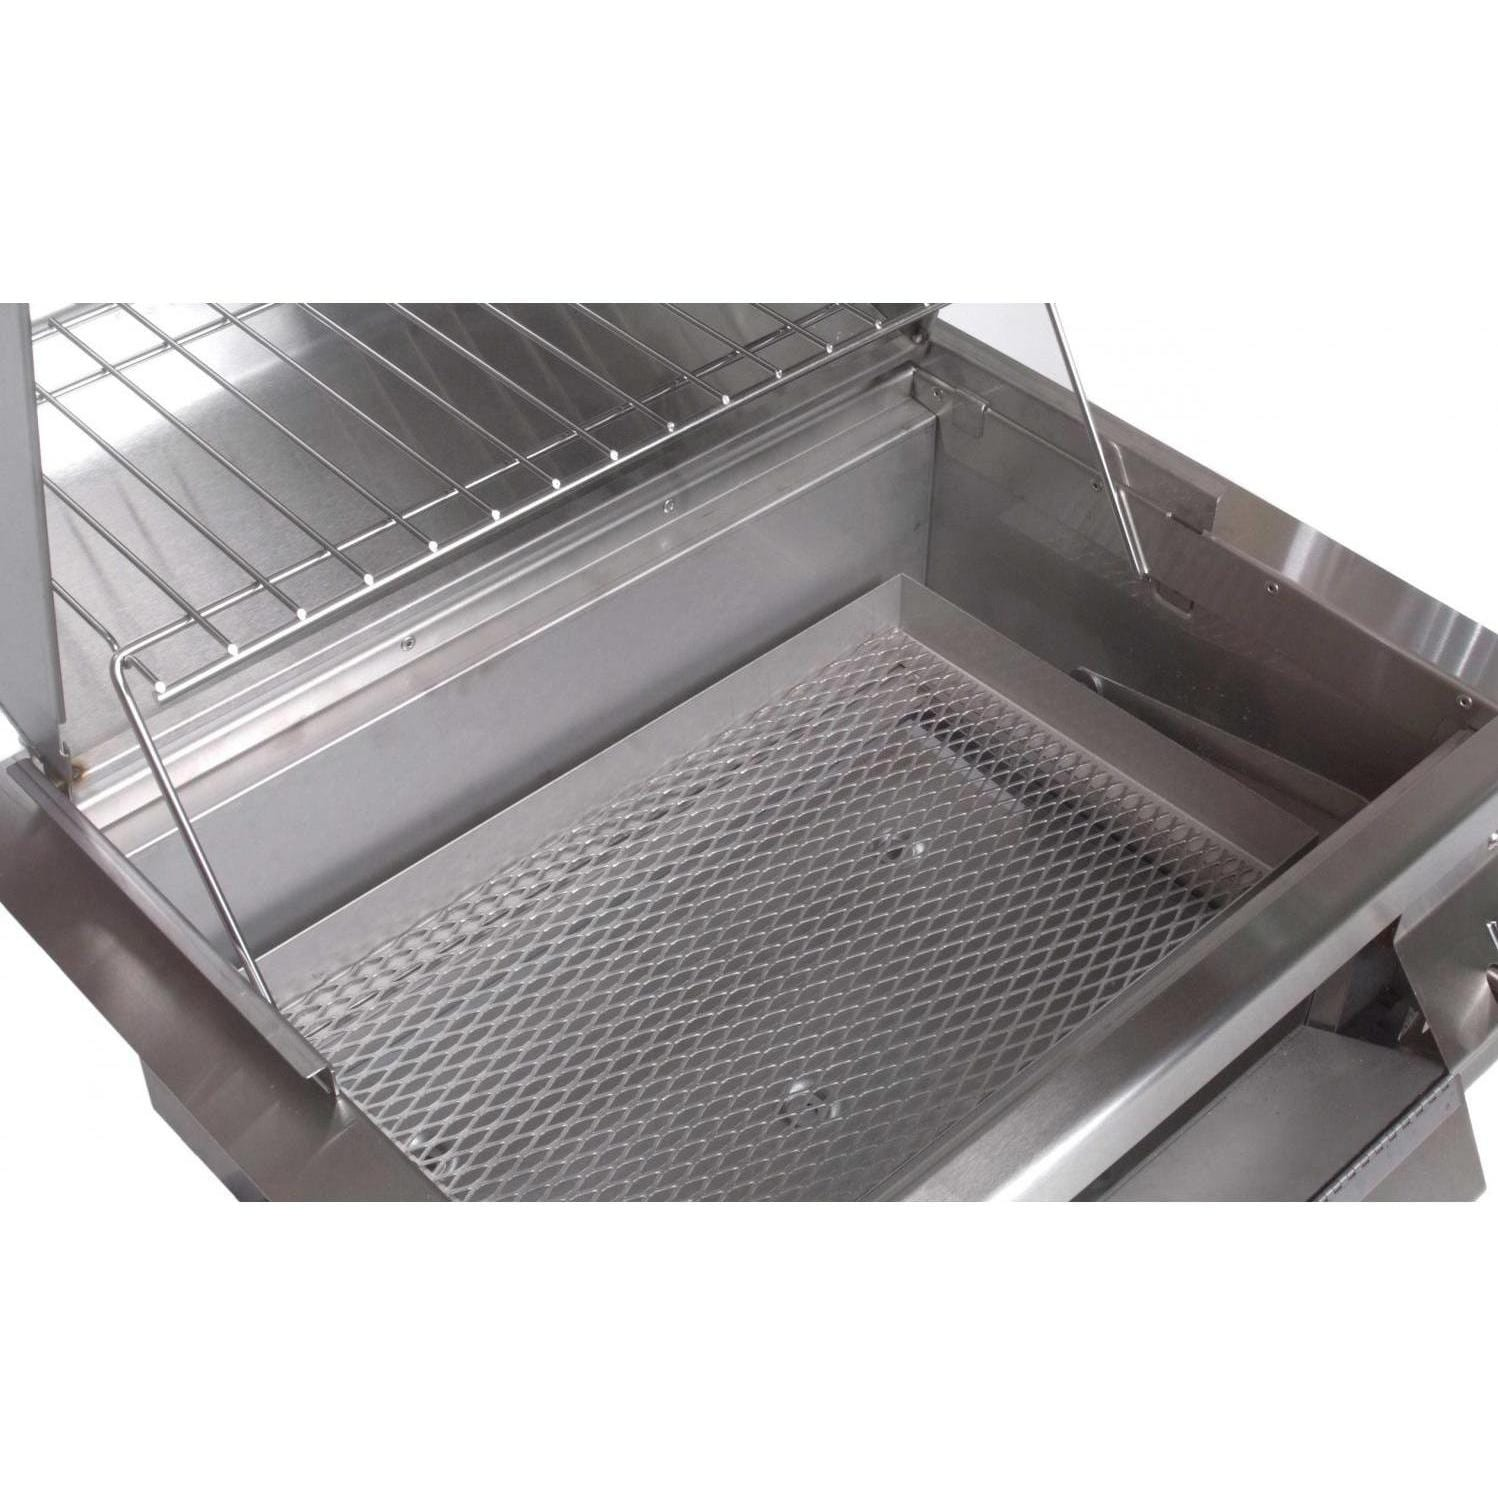 Fire Magic Charcoal Grills Legacy Smoker Grill   Adjustable Charcoal Tray  In Low Position